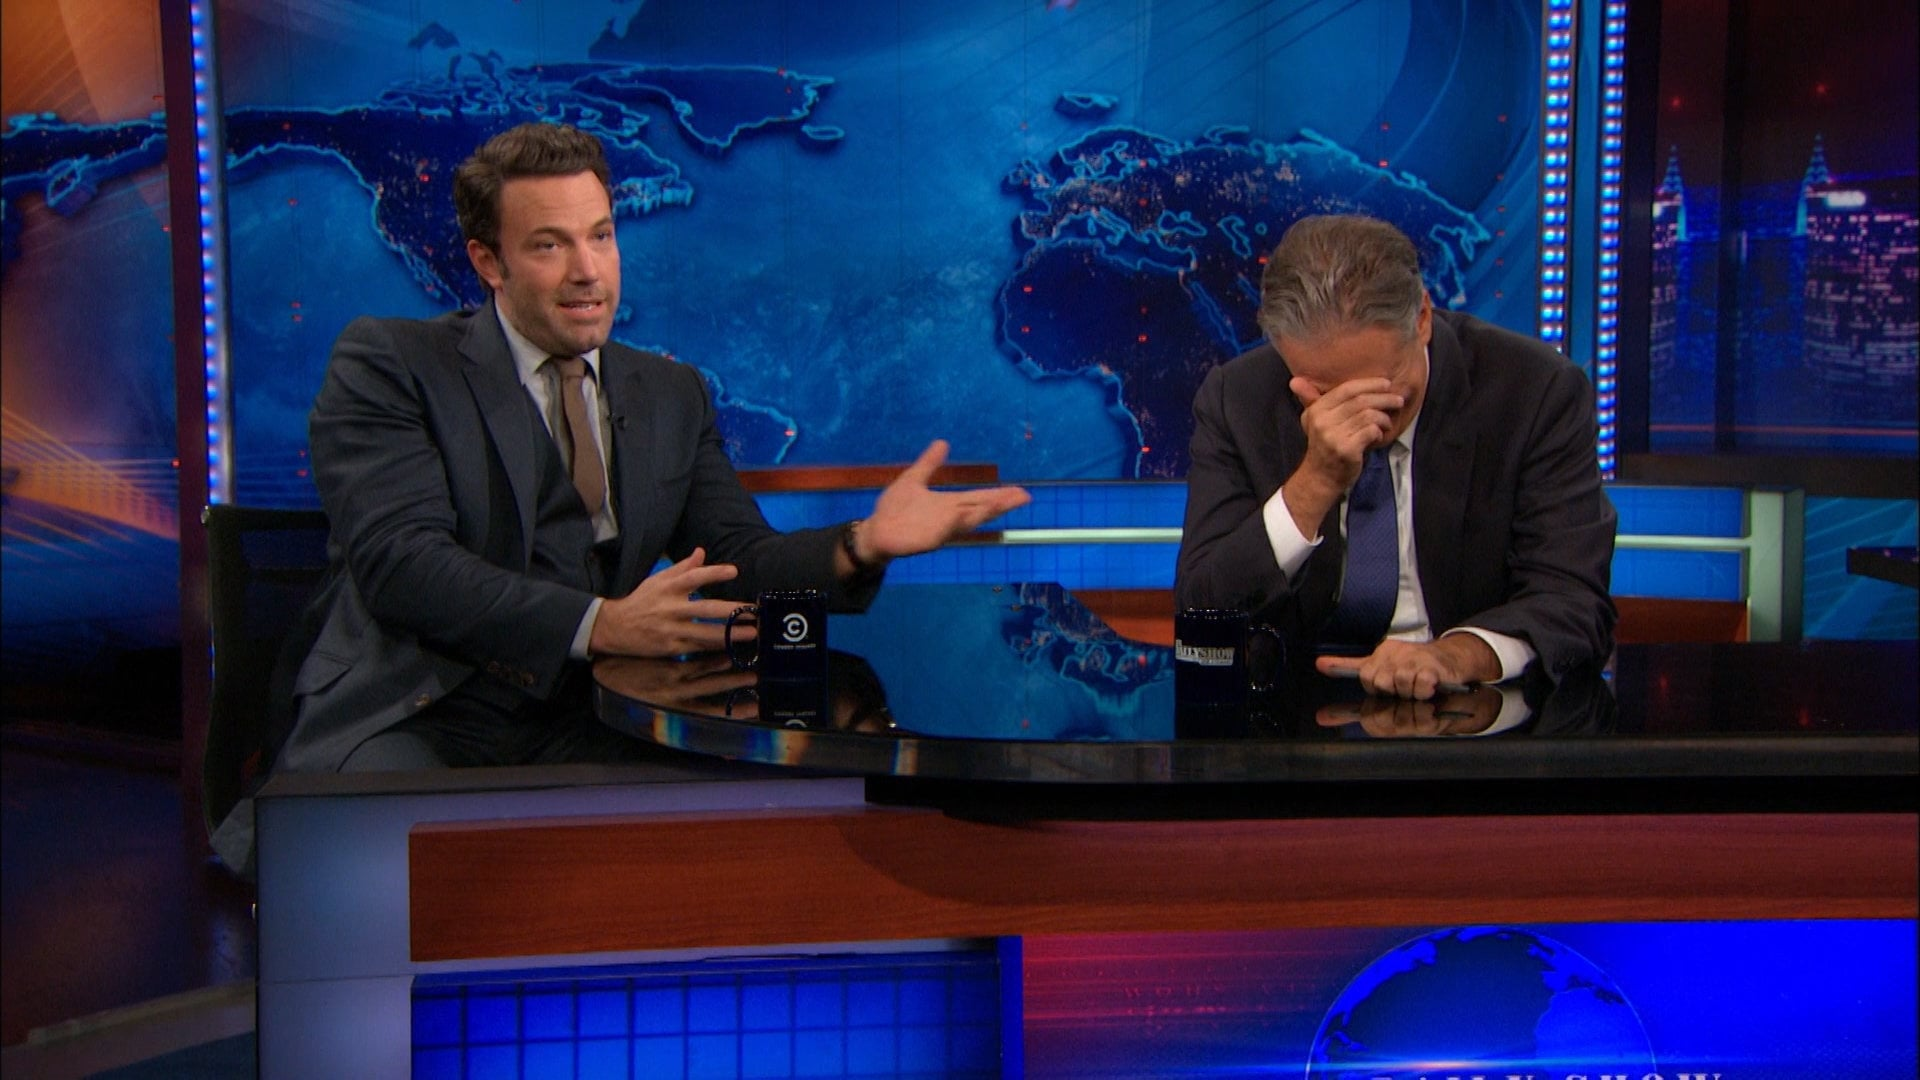 The Daily Show with Trevor Noah Season 20 :Episode 2  Ben Affleck